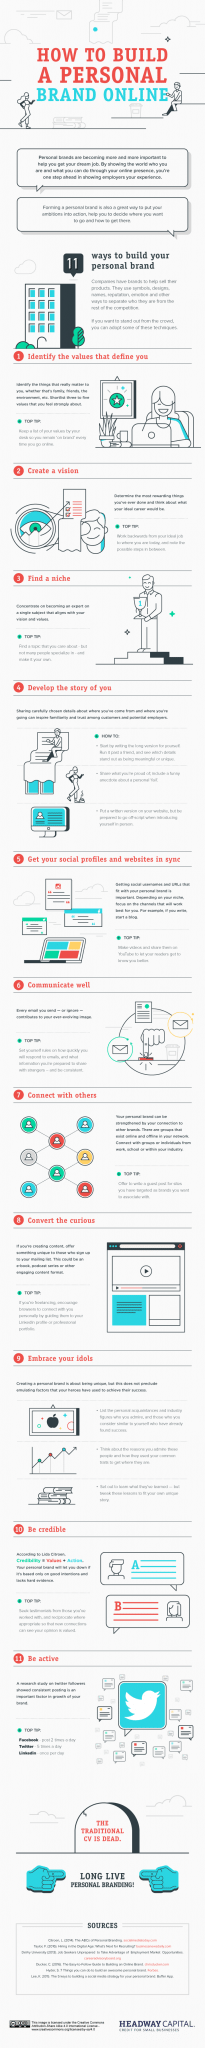 Photo of How to Build a Personal Brand Online [INFOGRAPHIC]